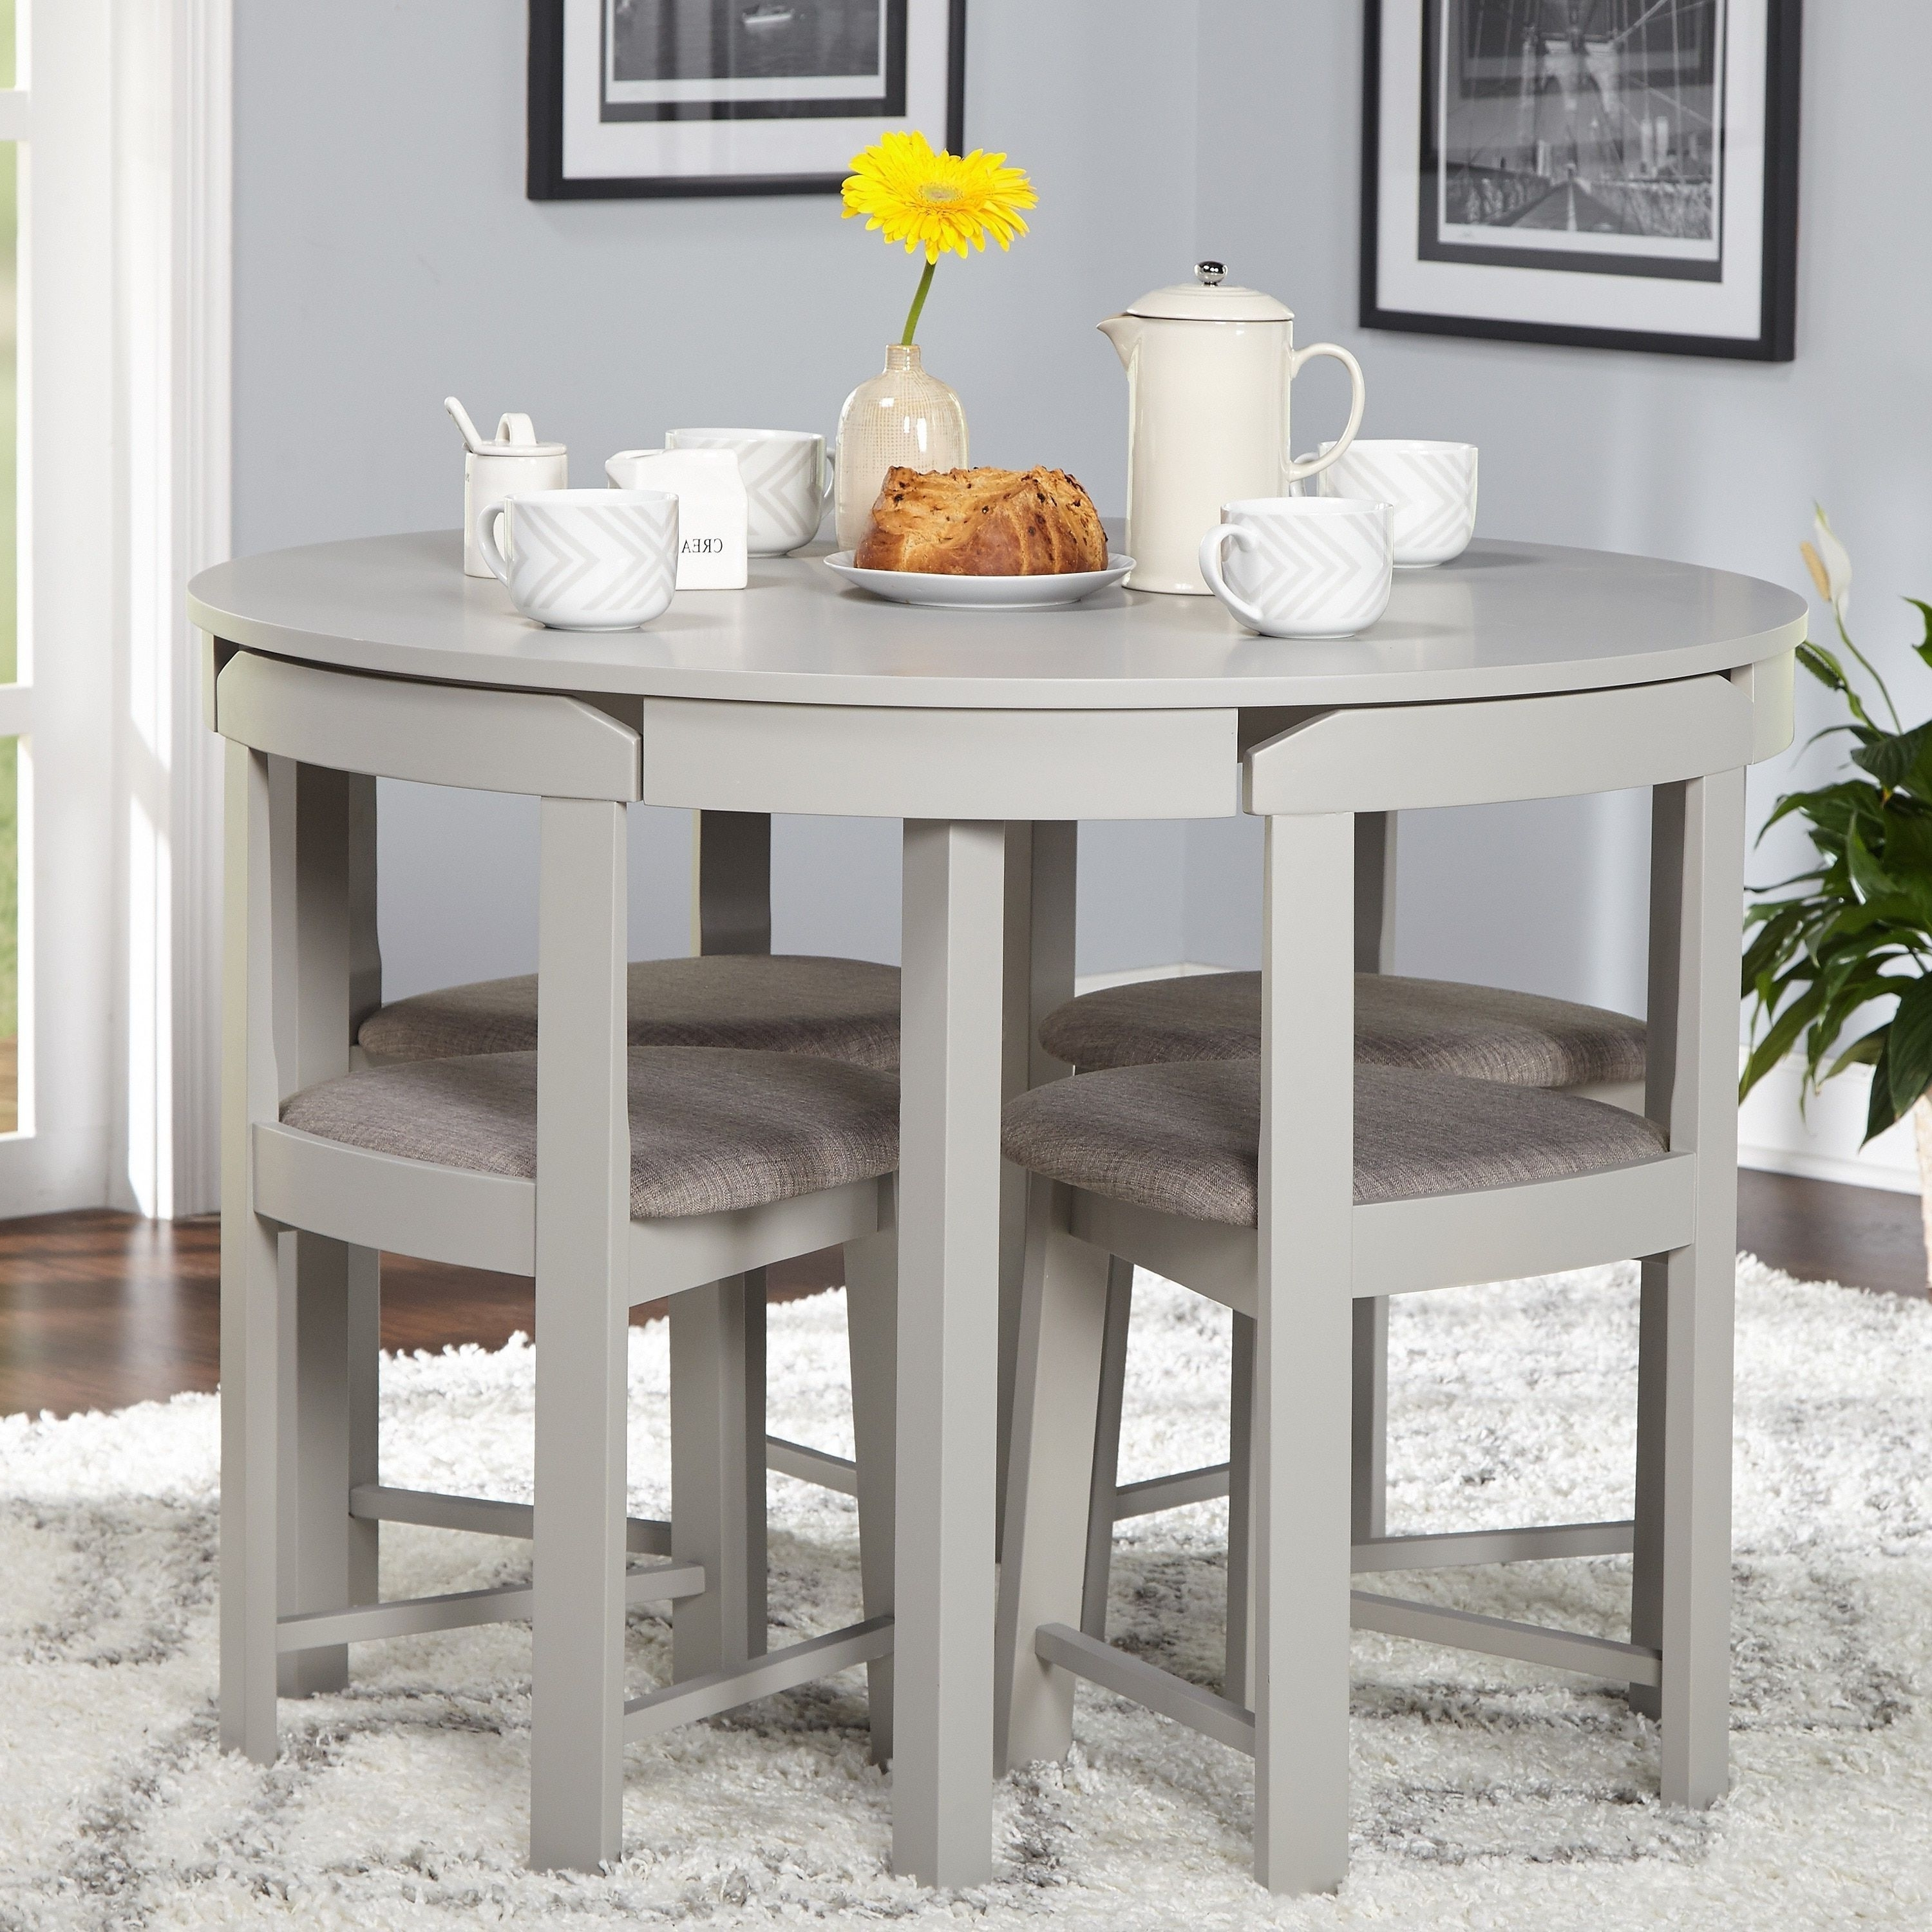 Widely Used Lassen 5 Piece Round Dining Sets Intended For Perfect For Smaller Spaces The 5 Piece Tobey Compact Dining Set (View 2 of 25)